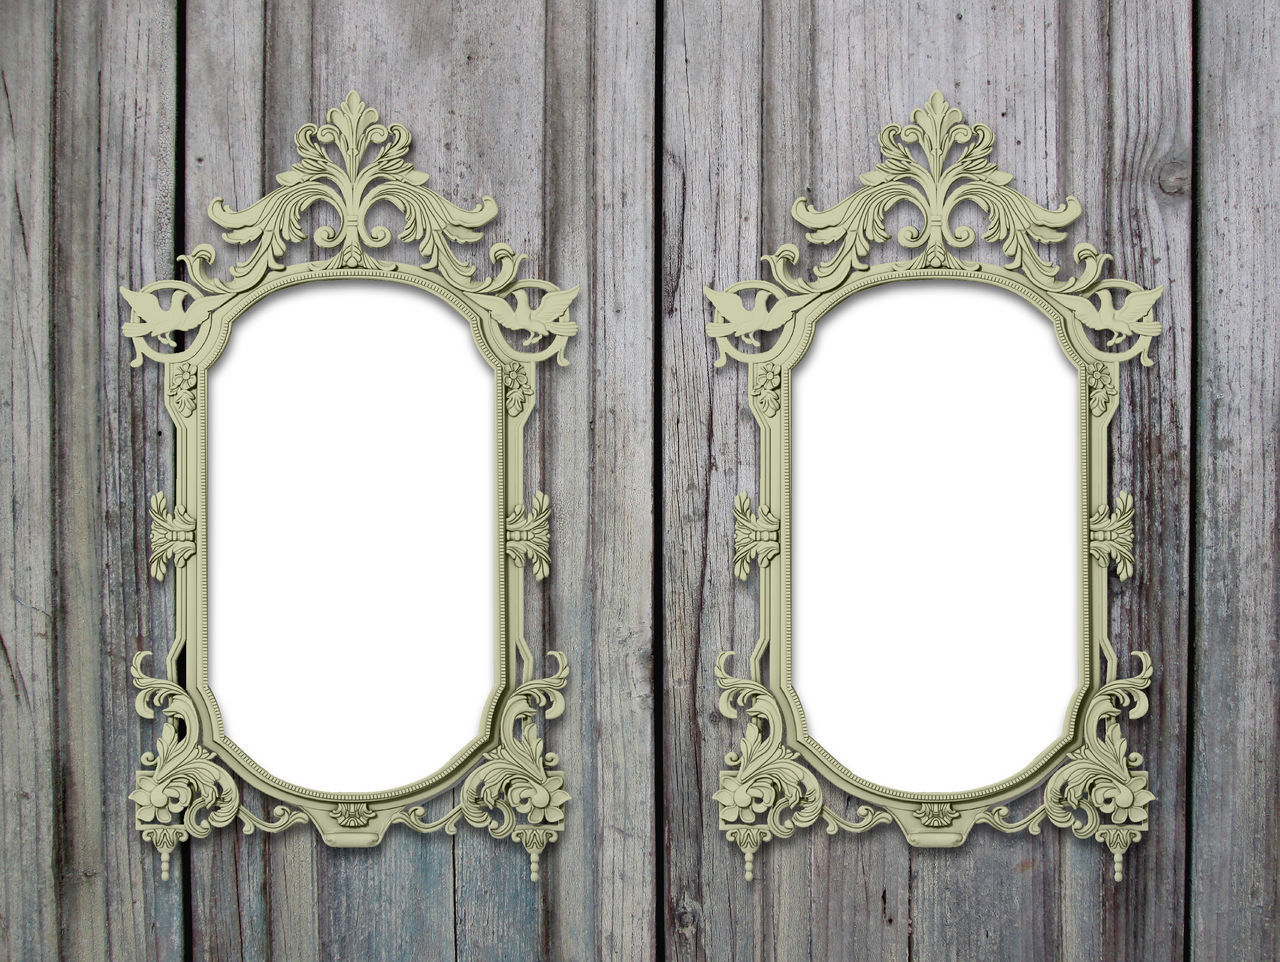 Two decorated baroque frames on grey wooden boards background Art And Craft Art Nouveau Frame Background Blue Design Geometry Historic Indoors  No People Old Old-fashioned Ornate Rococo Scratched And Cracked Wood Shades Of Grey Symmetry Timber Two Baroque Vertical Frames Vertical Symmetry Weathered Wooden Boards Wood